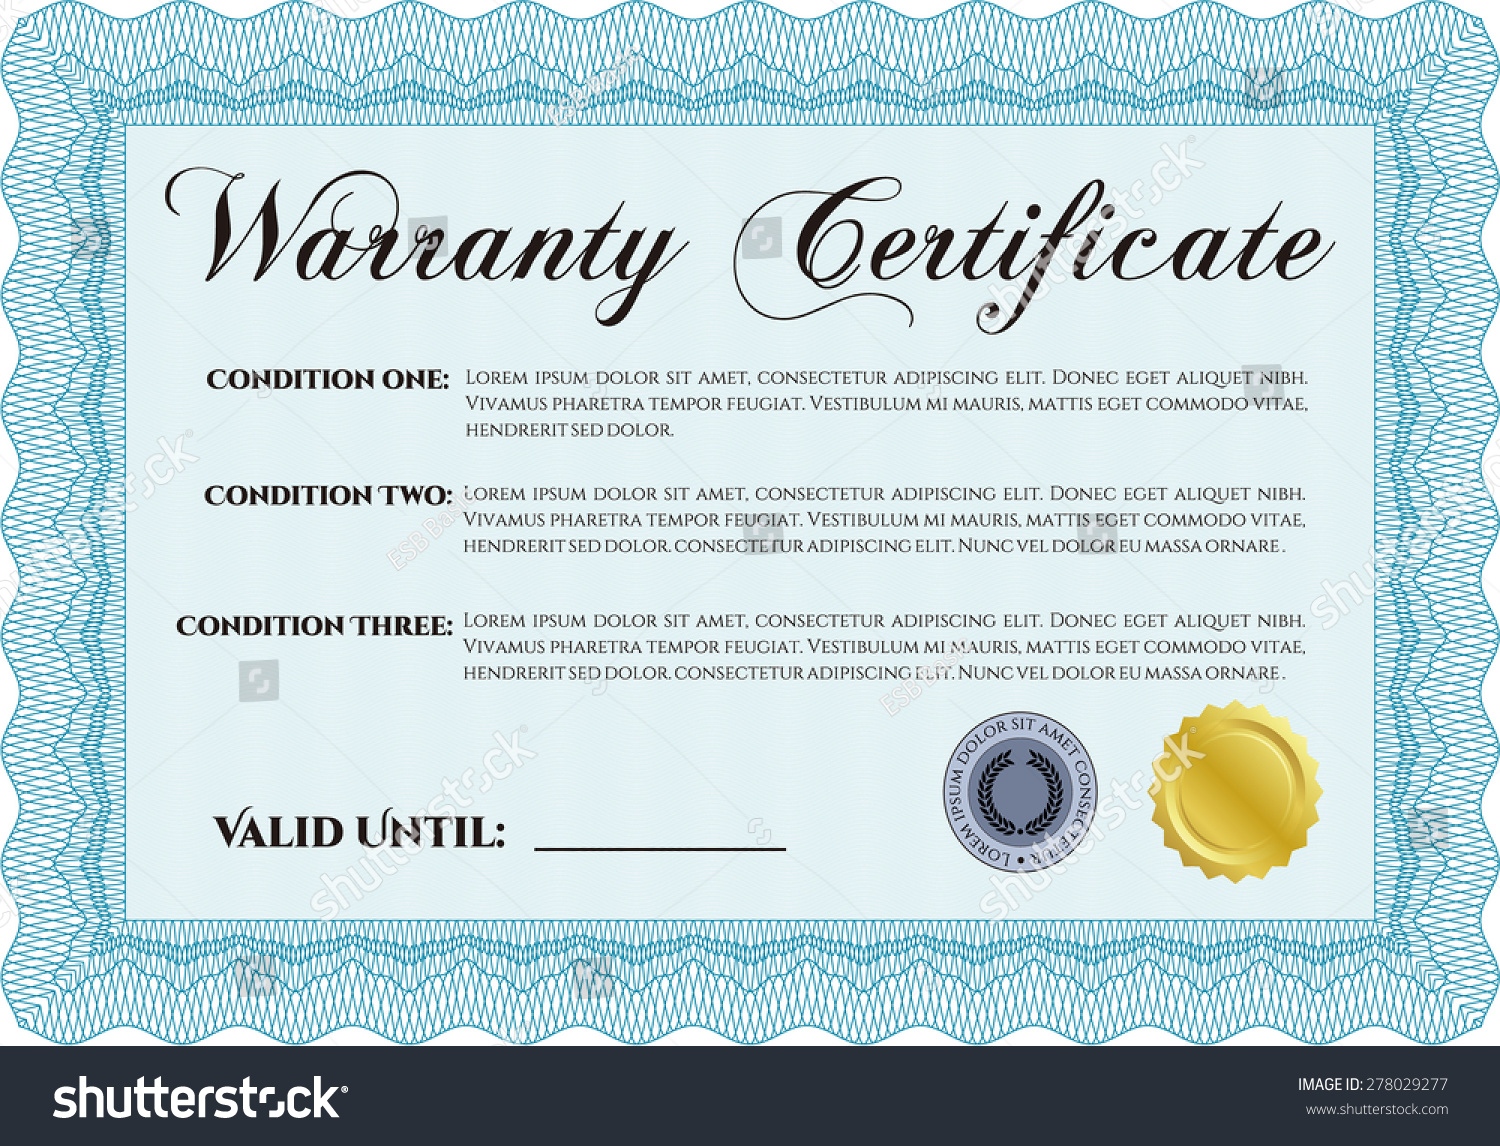 Sample warranty certificate template easy print stock vector sample warranty certificate template easy to print perfect style complex frame design yadclub Image collections